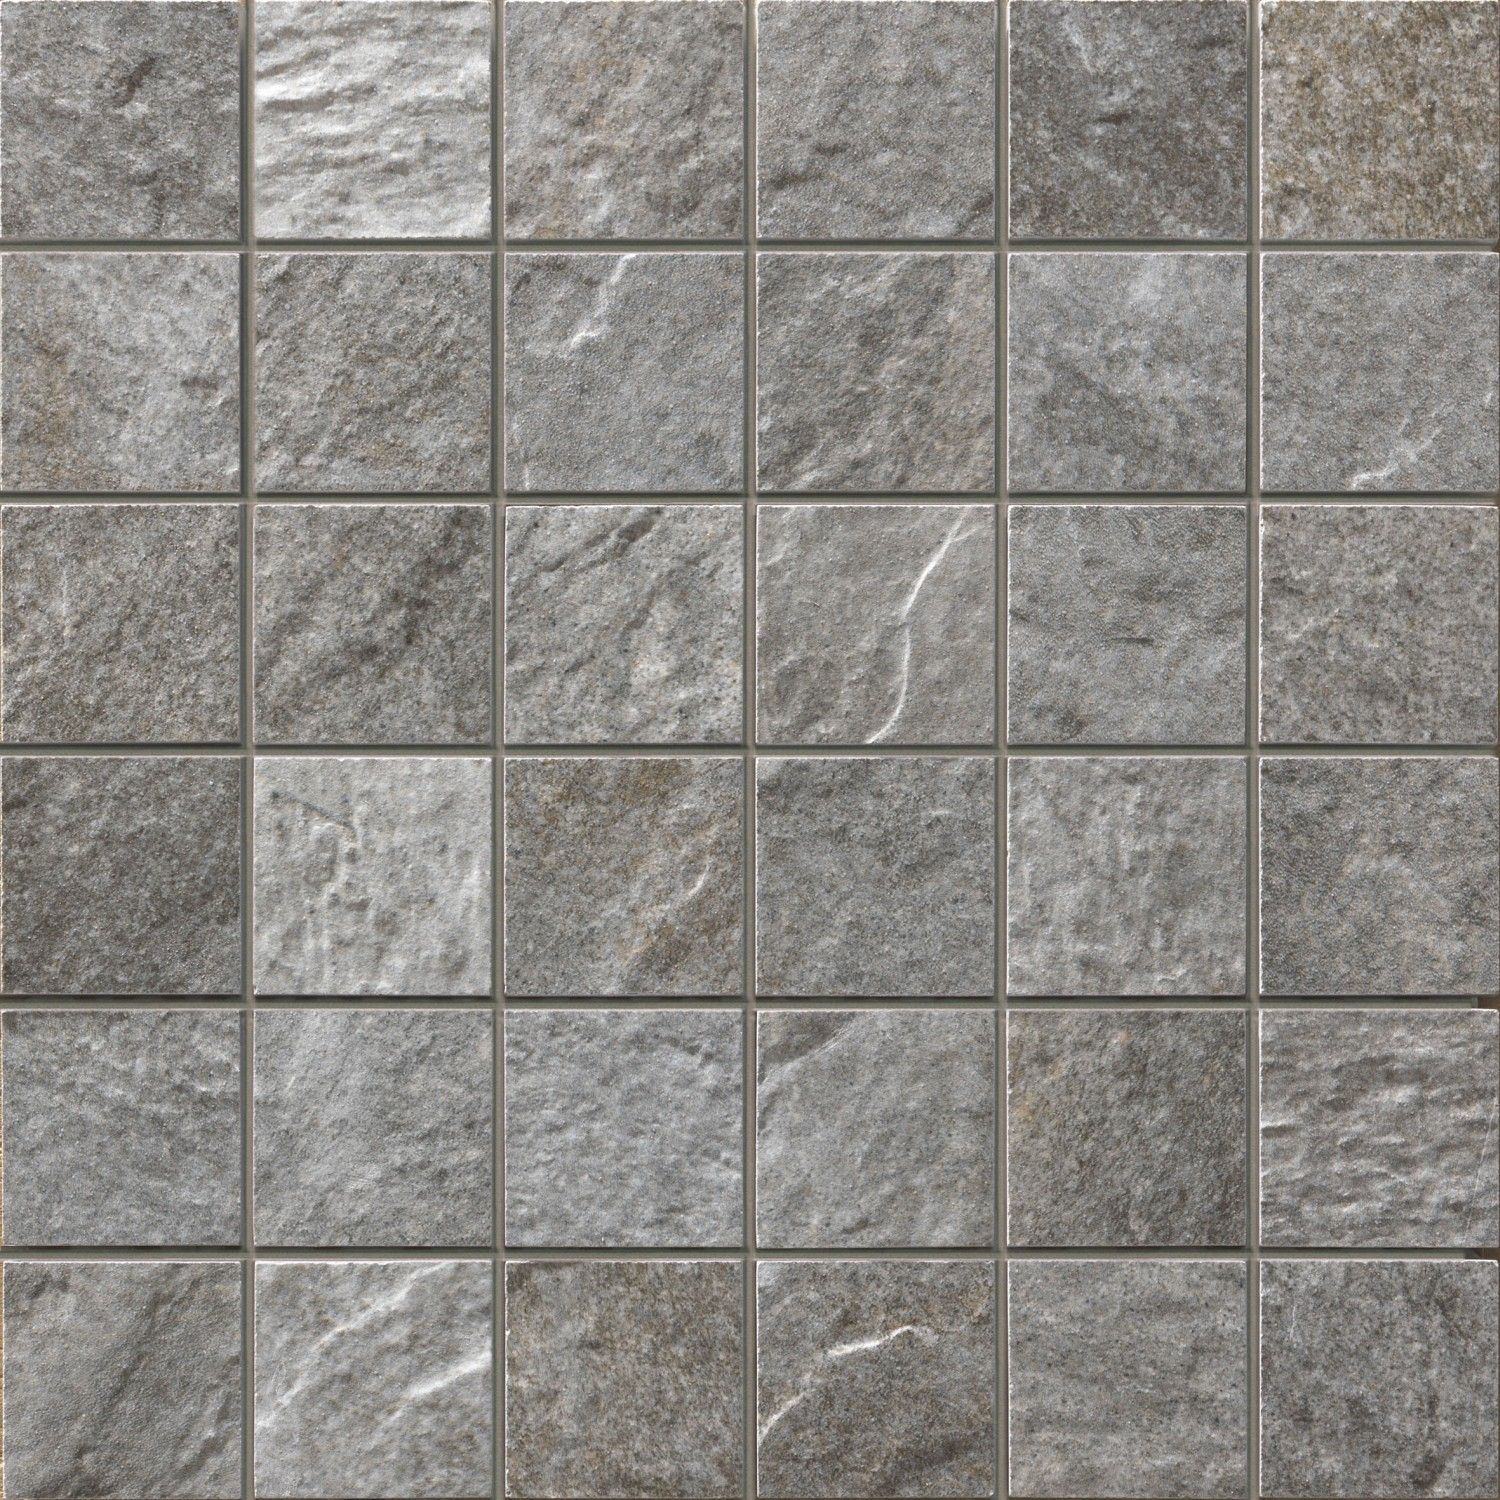 Textured Tiles For Bathroom Floor